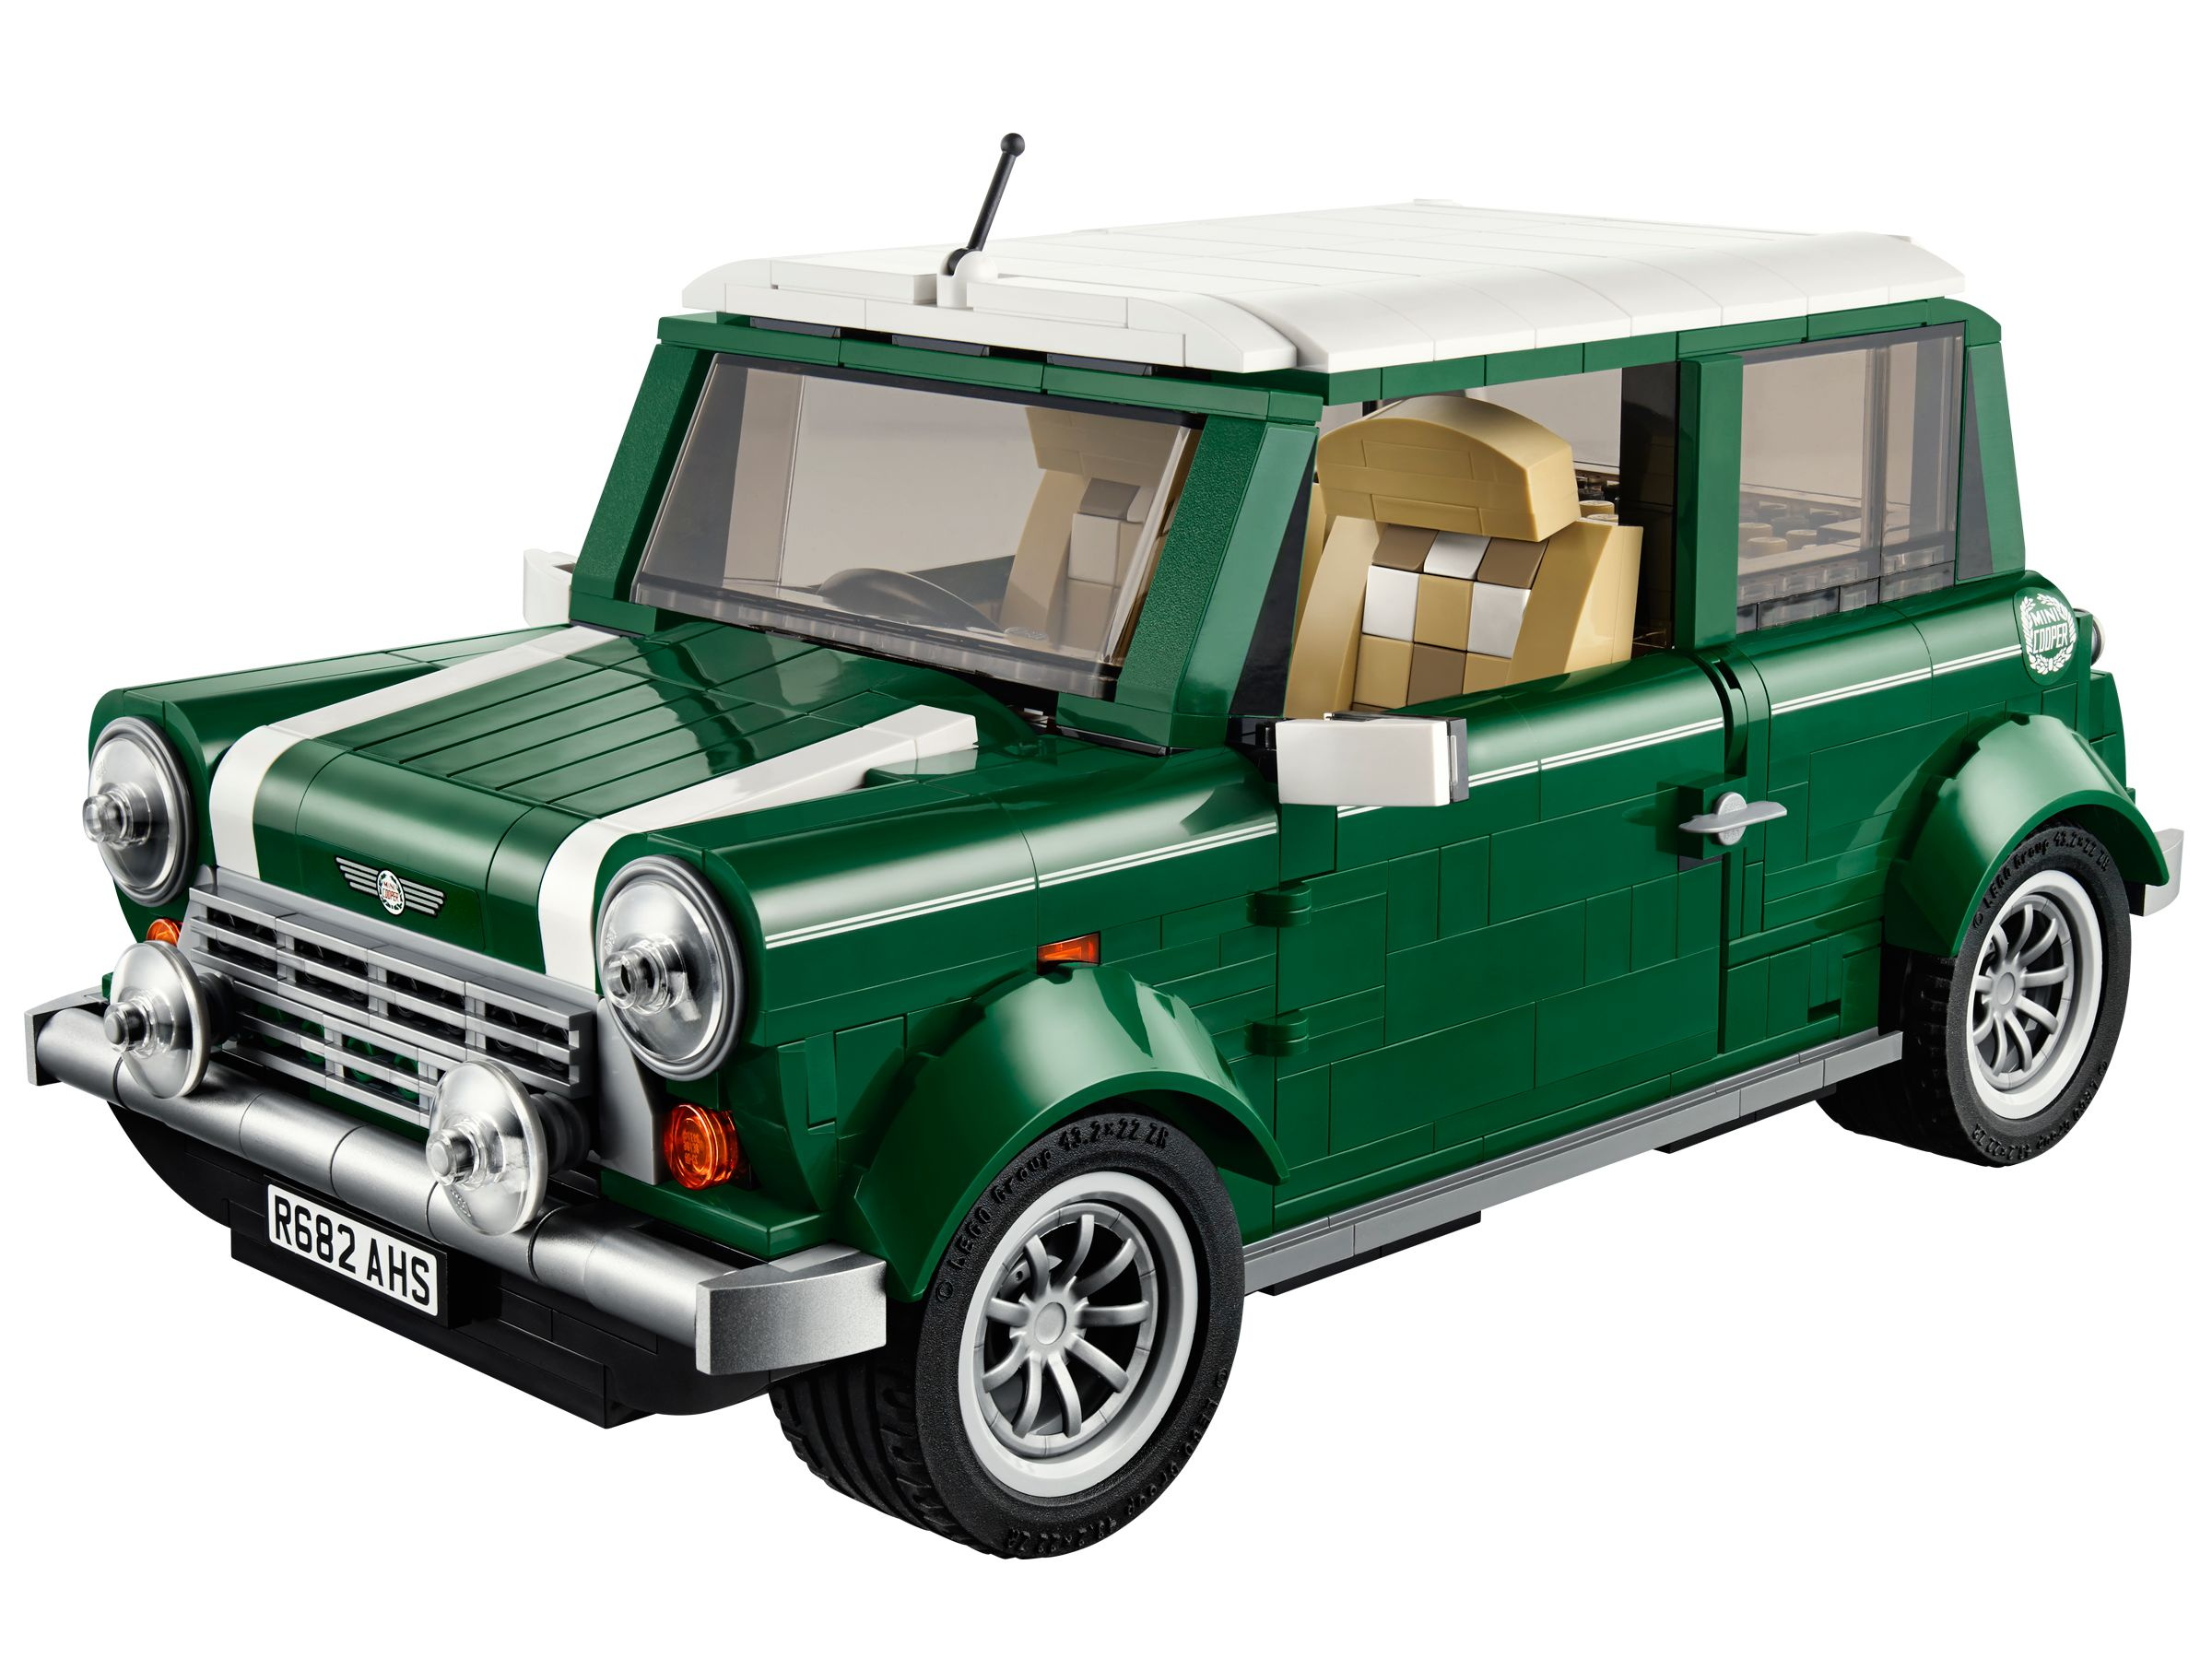 LEGO Advanced Models 10242 MINI Cooper LEGO_10242_alt2.jpg